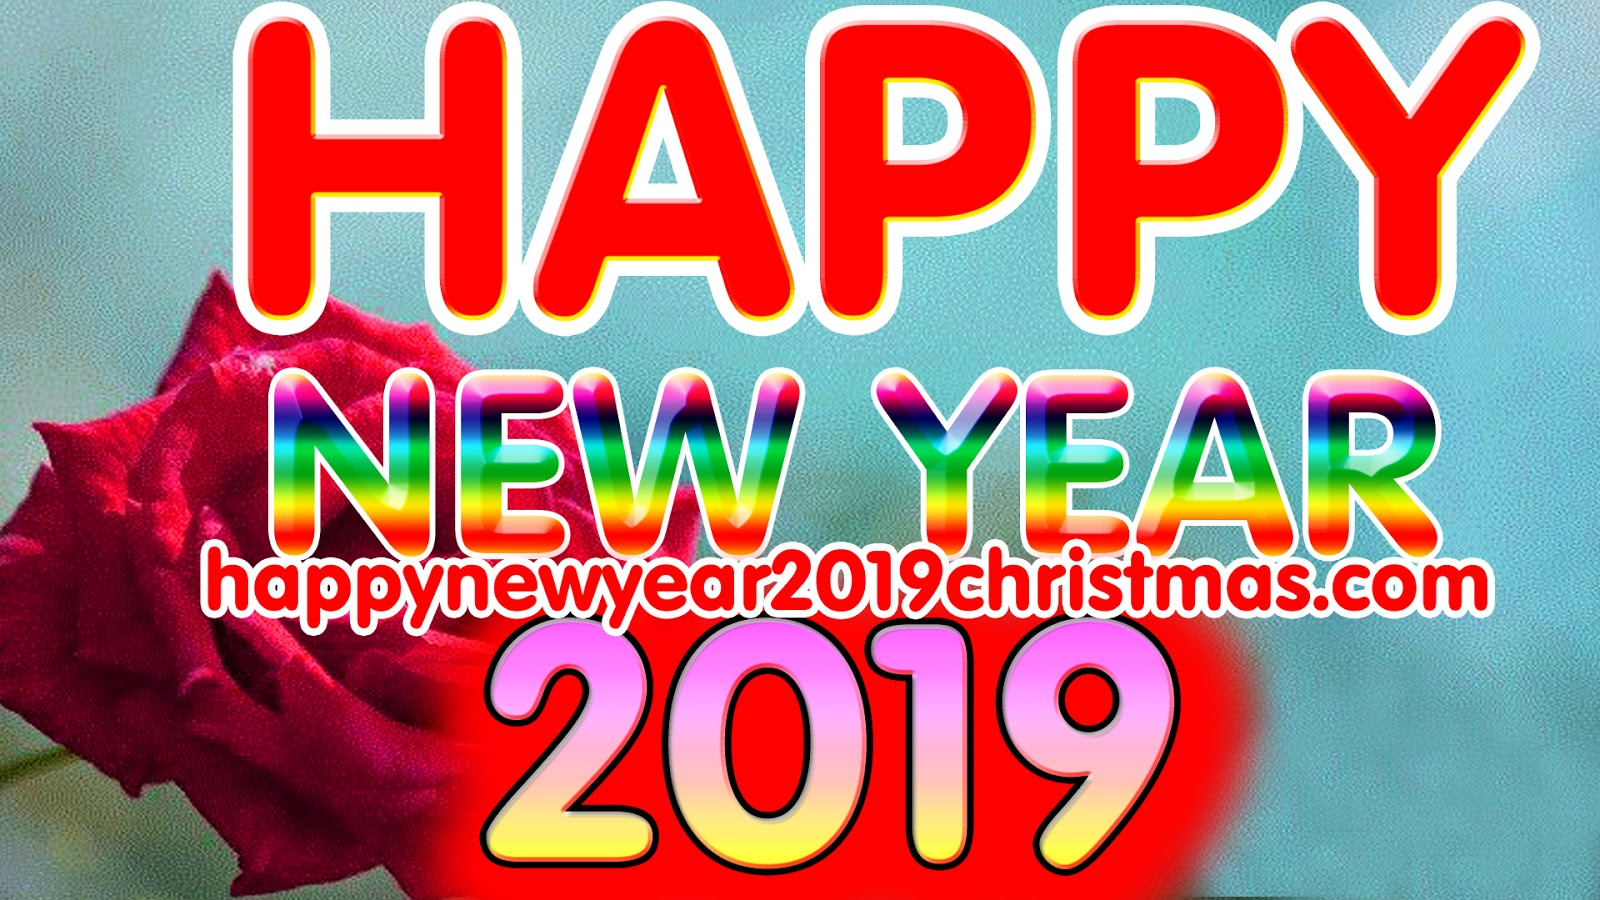 Happy New Year 2019 Greetings Wishes For Friends Happy New Year